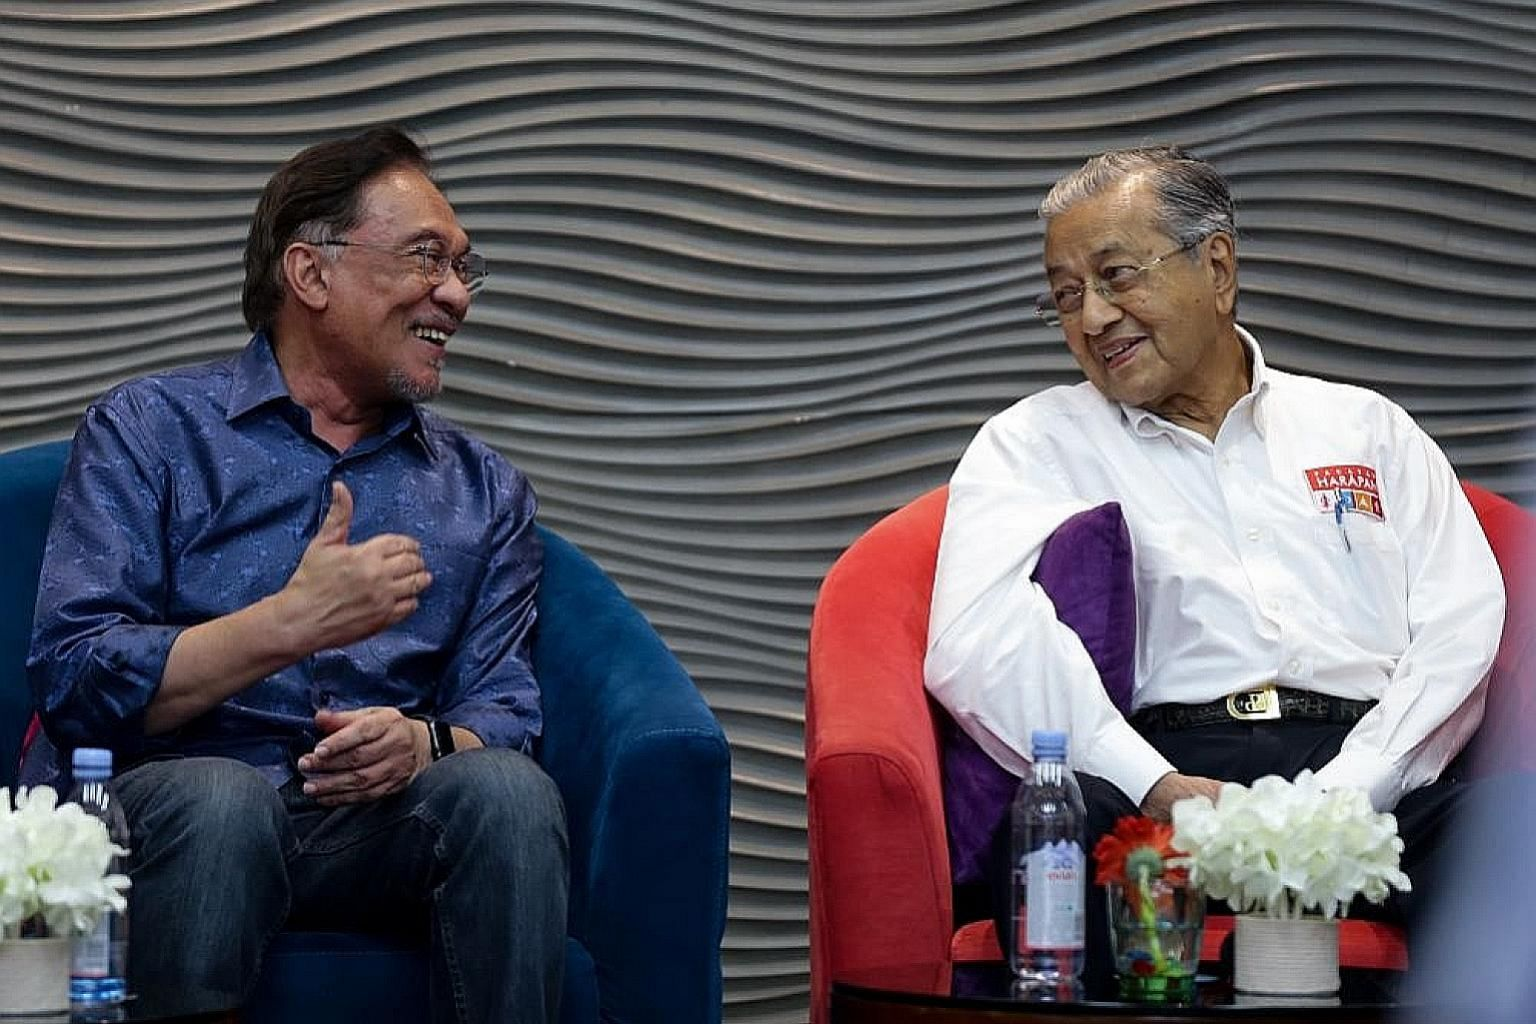 A July 19 photo of PKR leader Anwar Ibrahim (left) with Prime Minister Mahathir Mohamad at the party's retreat in Port Dickson. Sources say Tun Dr Mahathir has no part in the plan to thwart Datuk Seri Anwar. PHOTO: MALAY MAIL